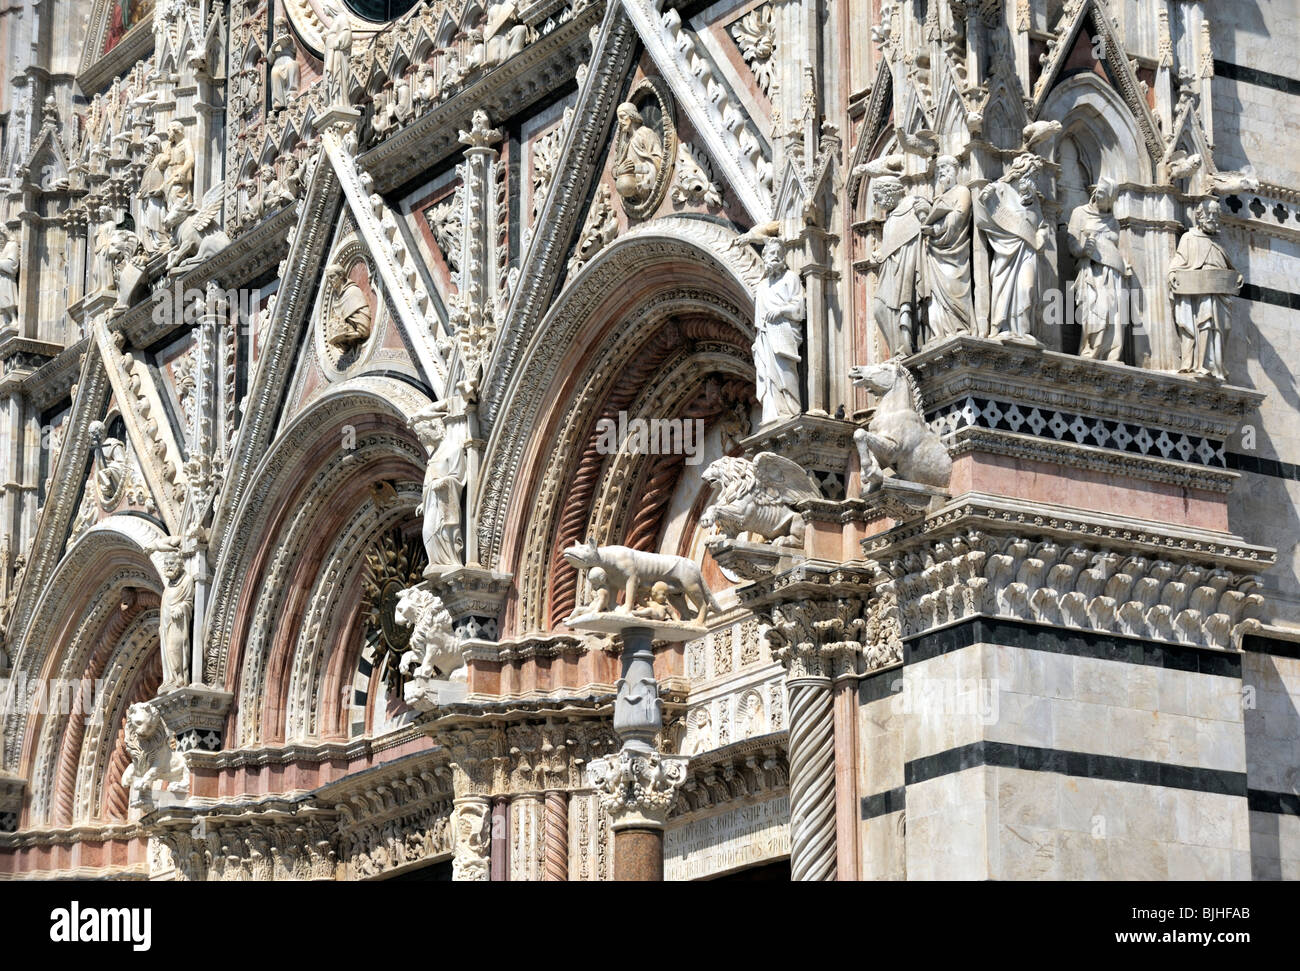 Sienna Cathedral, Tuscany, Italy. The candy-striped main façade of the duomo adorned with beasts and intricate - Stock Image